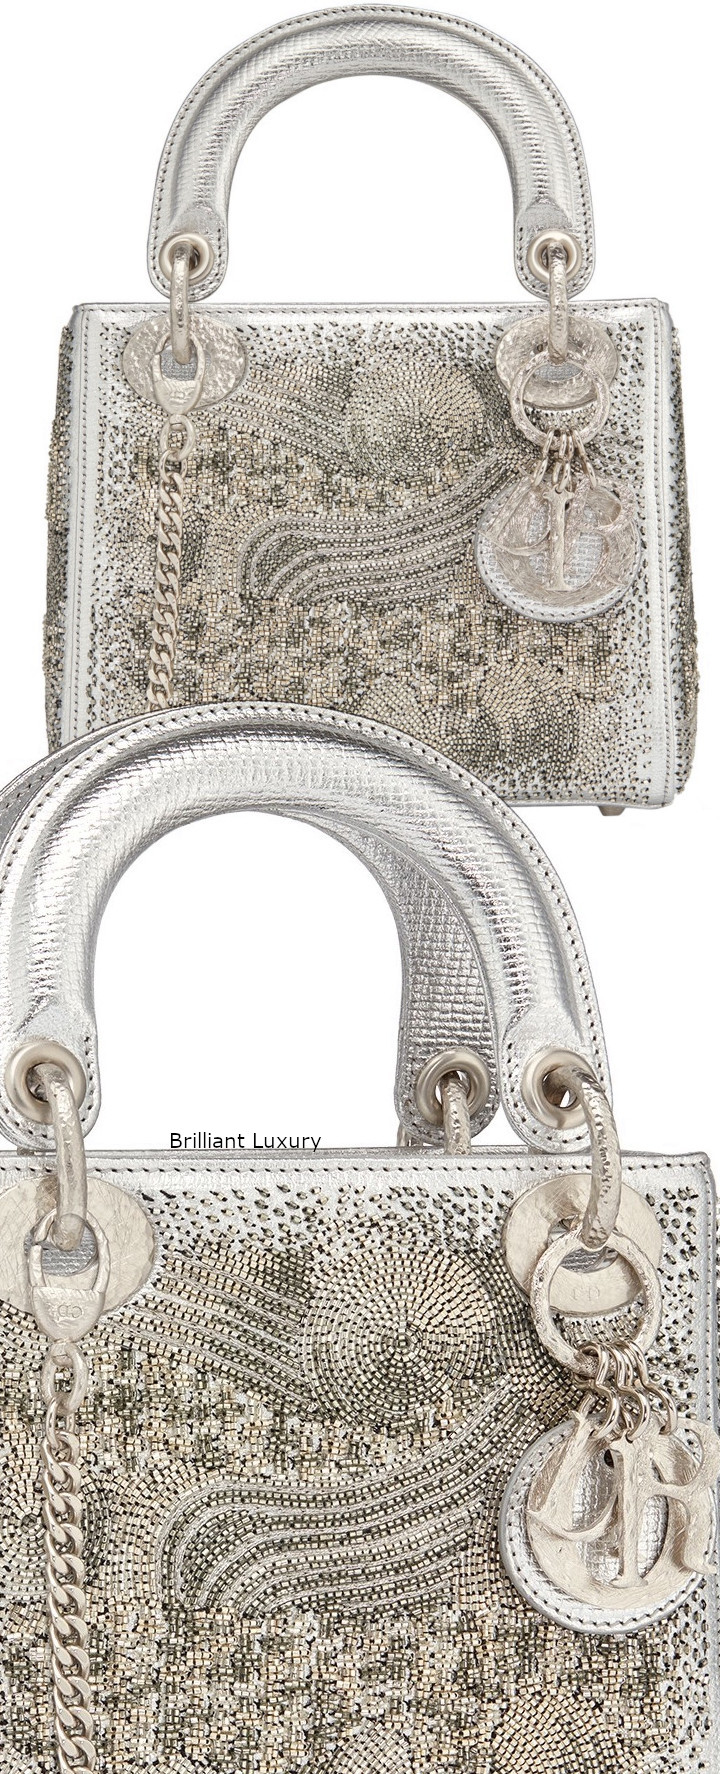 Brilliant Luxury│Lady DIOR Art Bag in silver color textured goatskin, embroidered with metallized tubes-hand-hammered silver tone metal charms, Designer Olga de Amaral